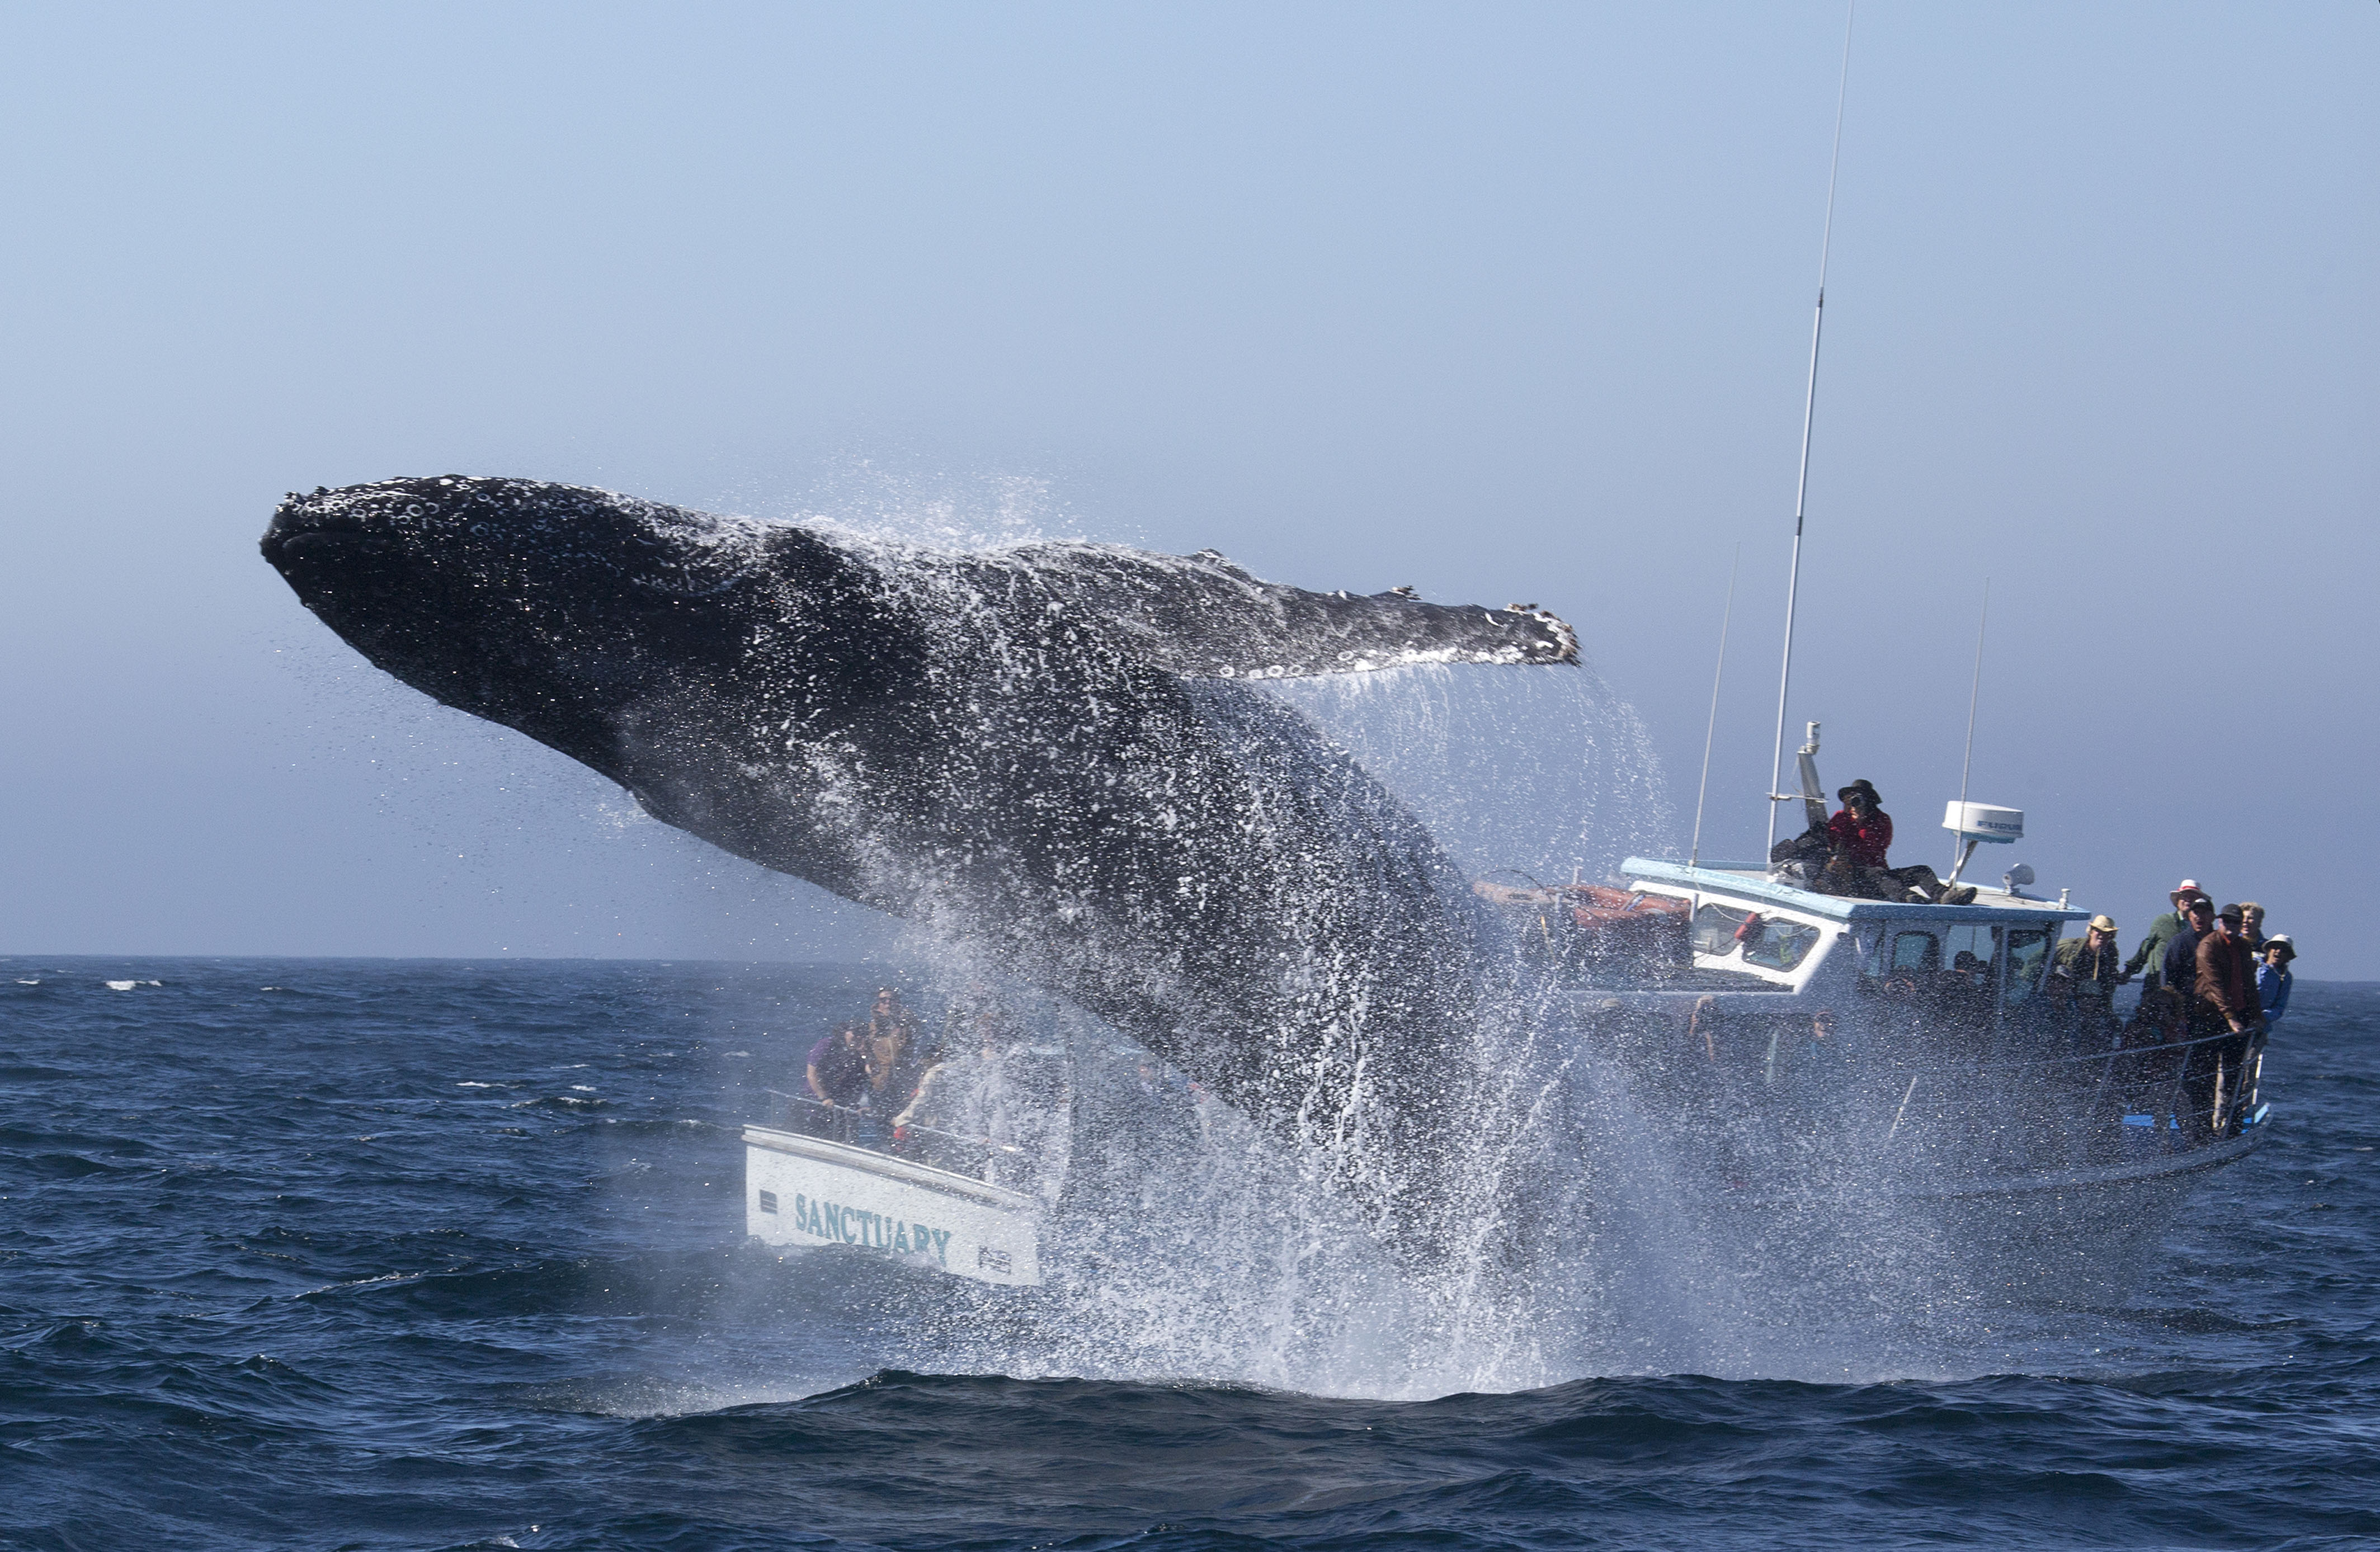 Humpback Whales Quot Free Willy Quot Moment Captured On Camera